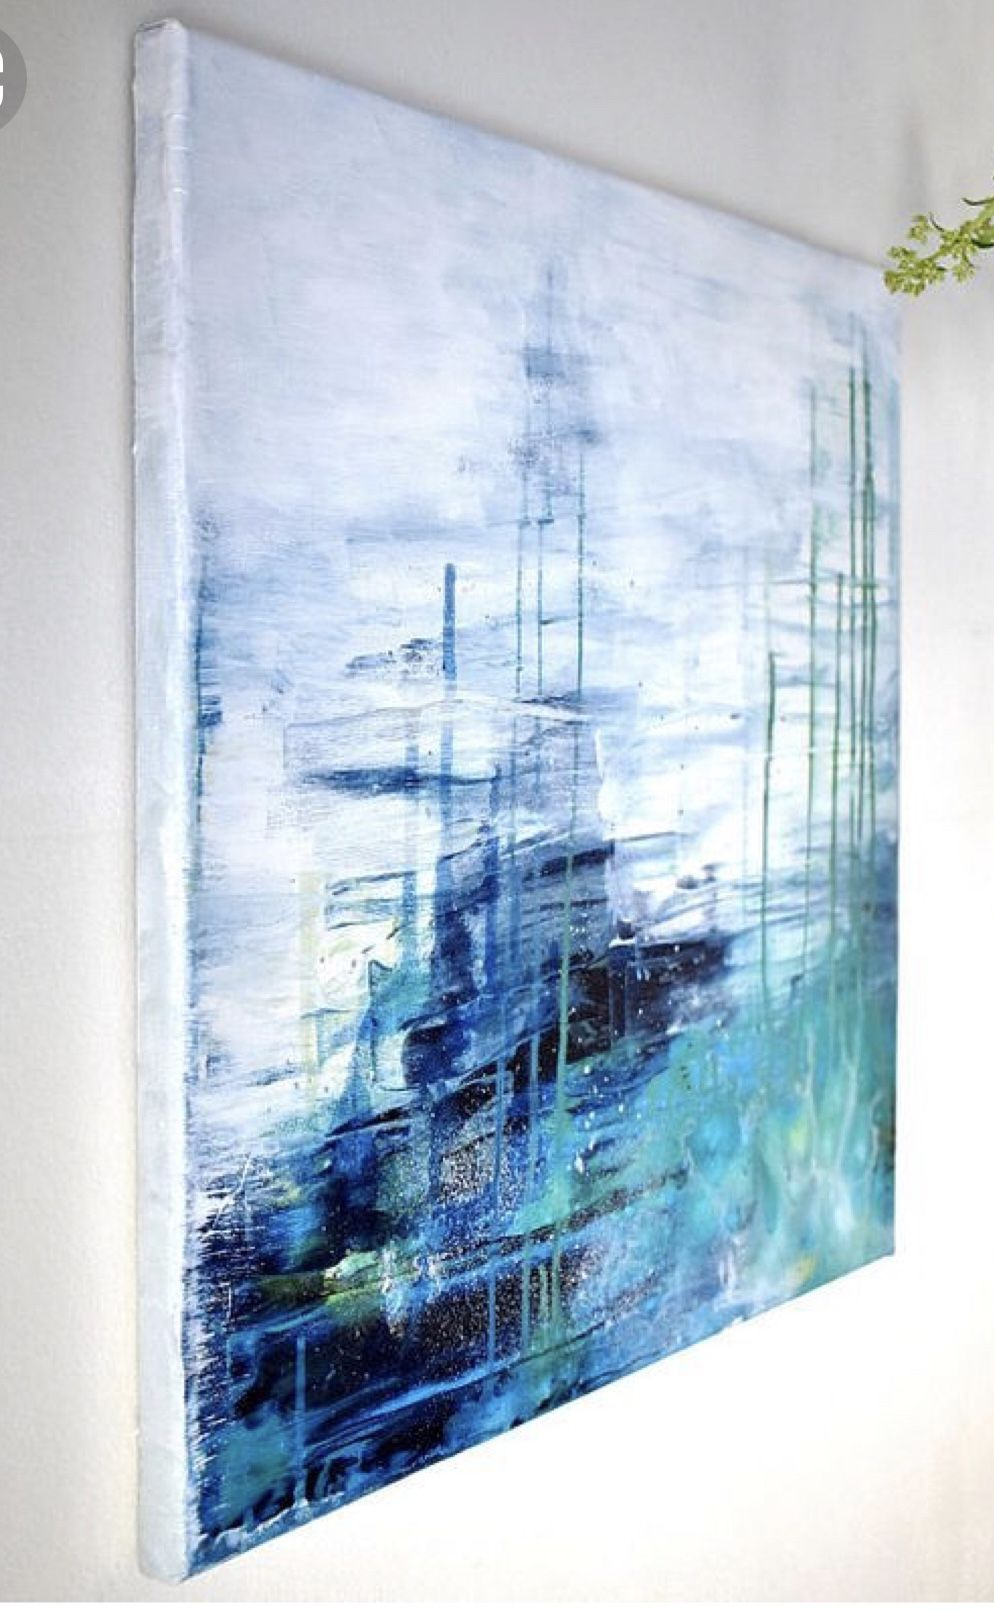 Pin by Leroy MERLIN on PINTAR | Abstract art painting, Abstract canvas  painting, Abstract